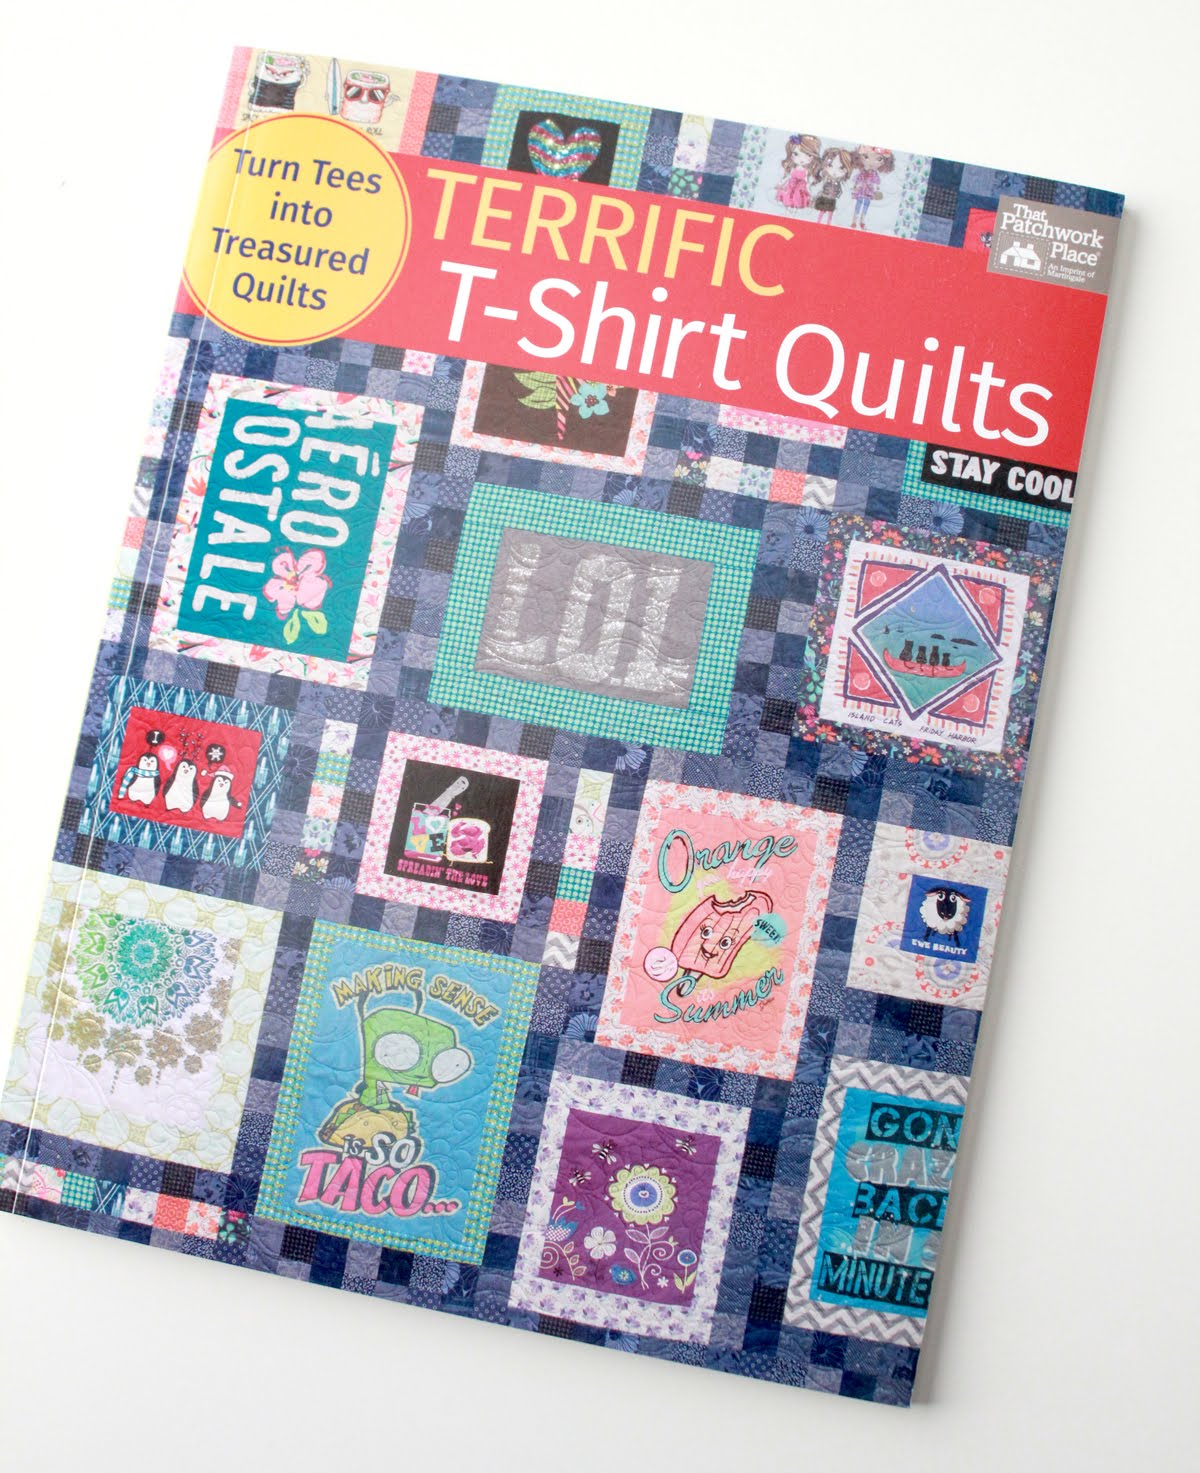 T Shirt Quilt Pattern Book : A Bright Corner: Terrific T-Shirt Quilts Book + Giveaway